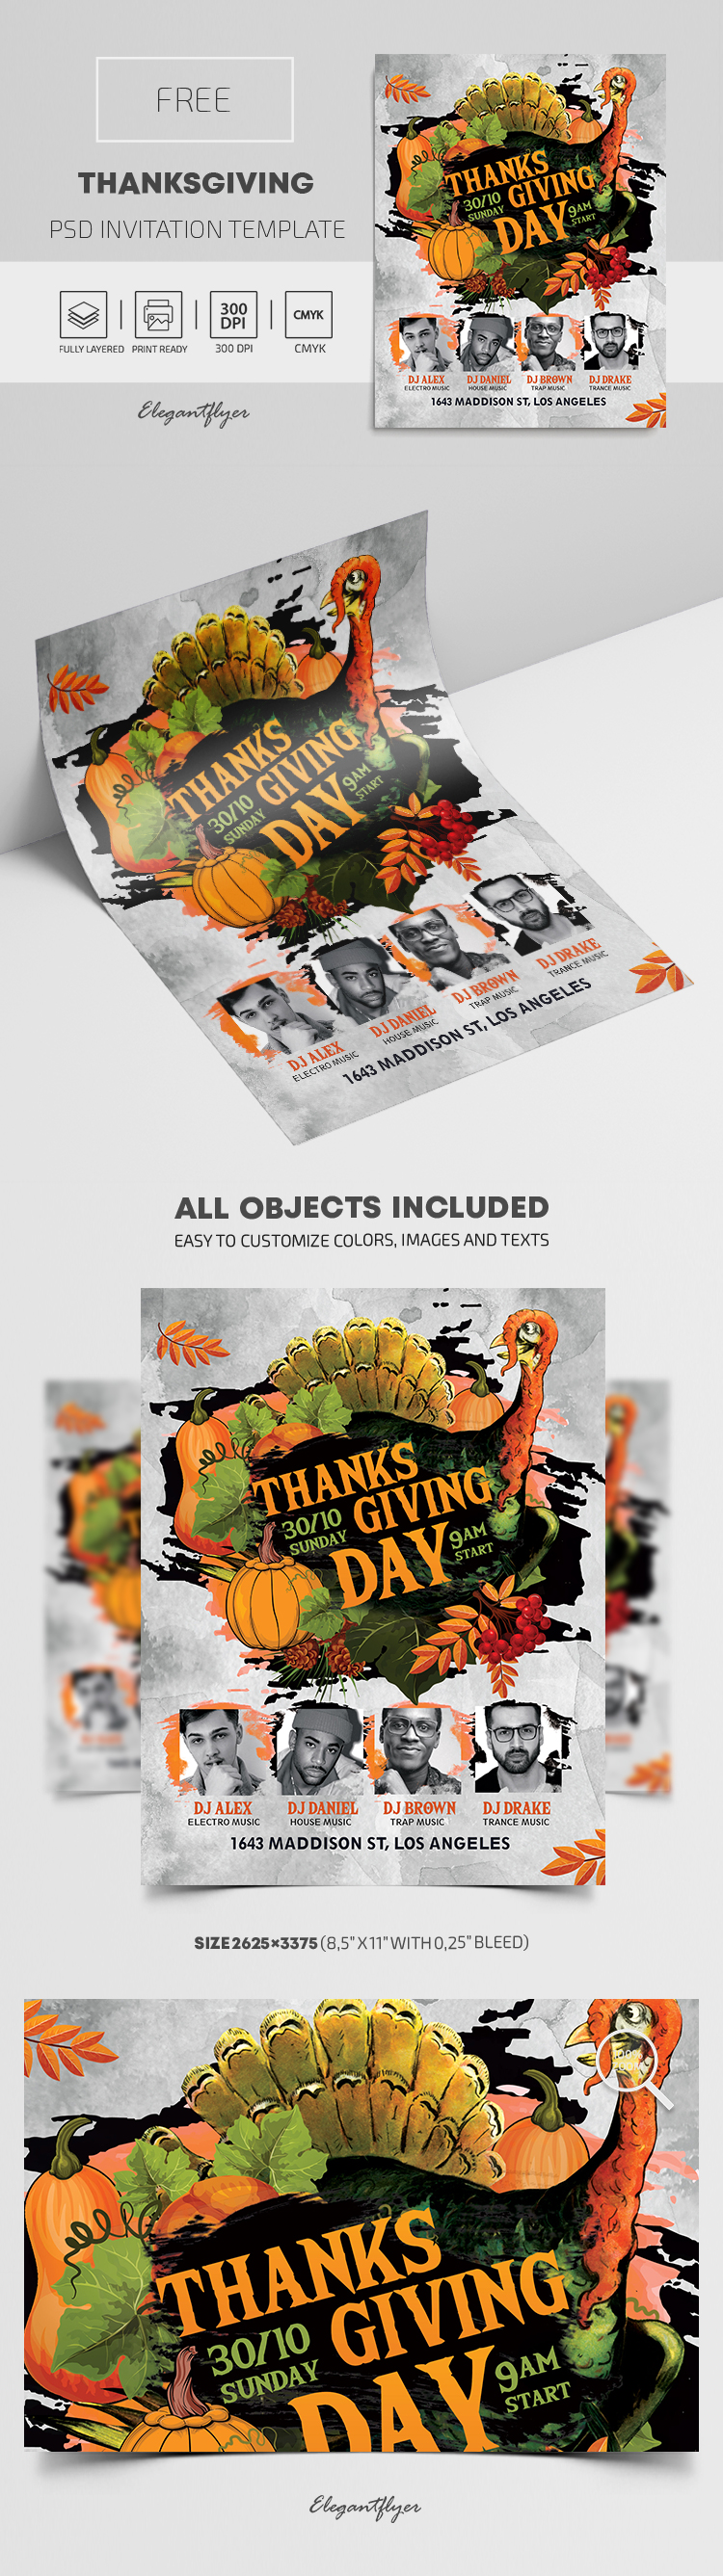 Free Thanksgiving Invitation PSD Template